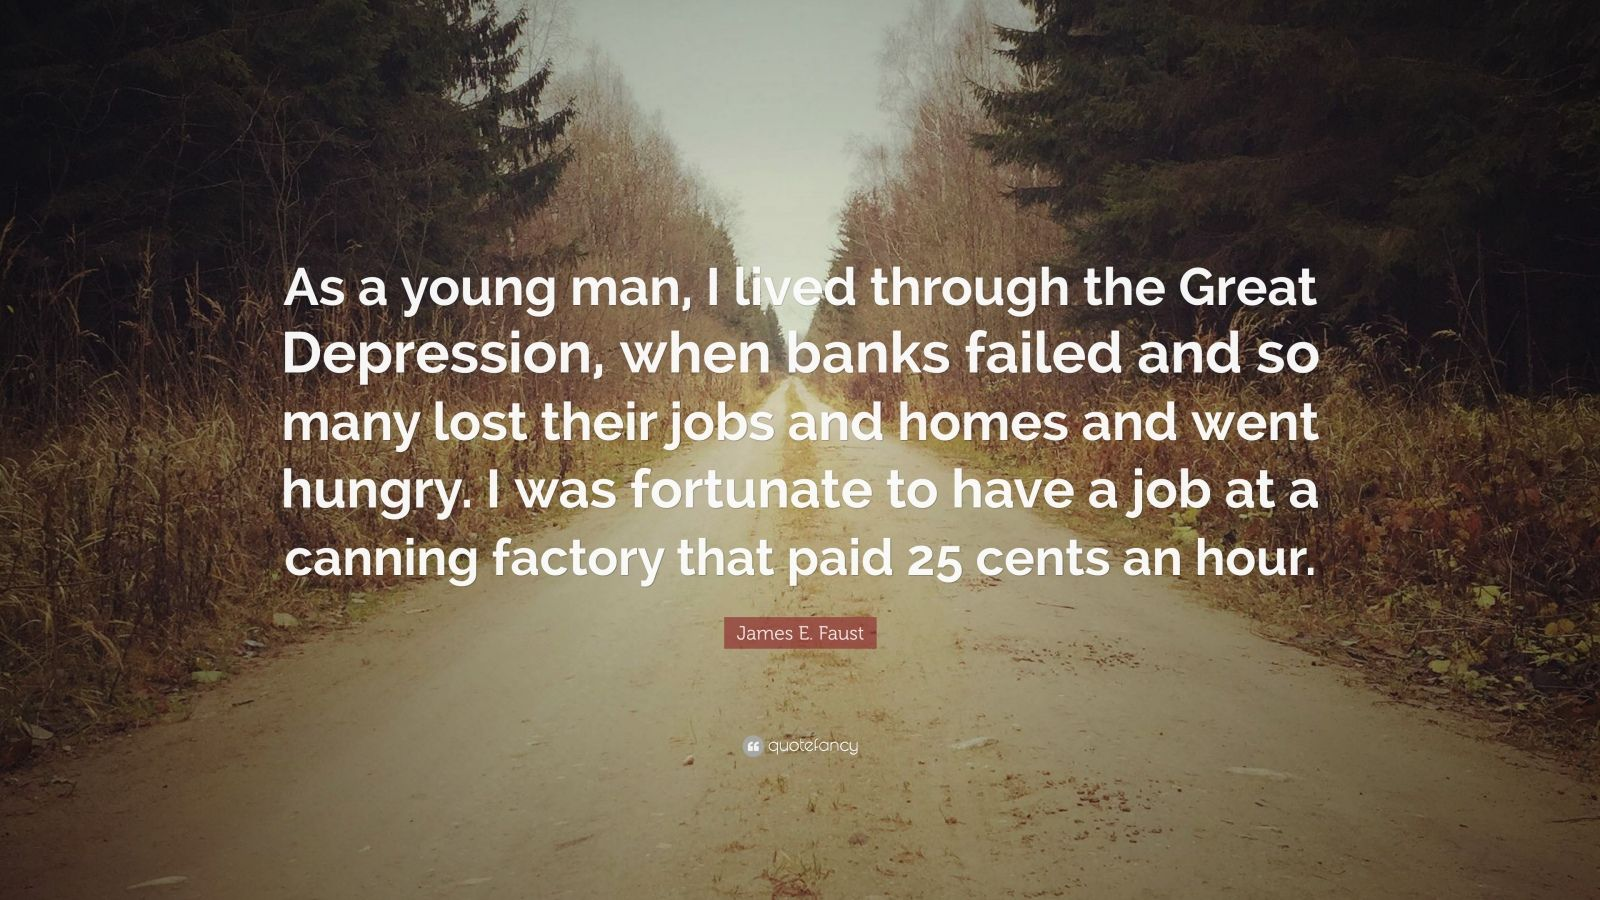 "James E. Faust Quote: ""As a young man, I lived through the Great Depression, when banks failed and so many lost their jobs and homes and went hungry. I was fortunate to have a job at a canning factory that paid 25 cents an hour."""